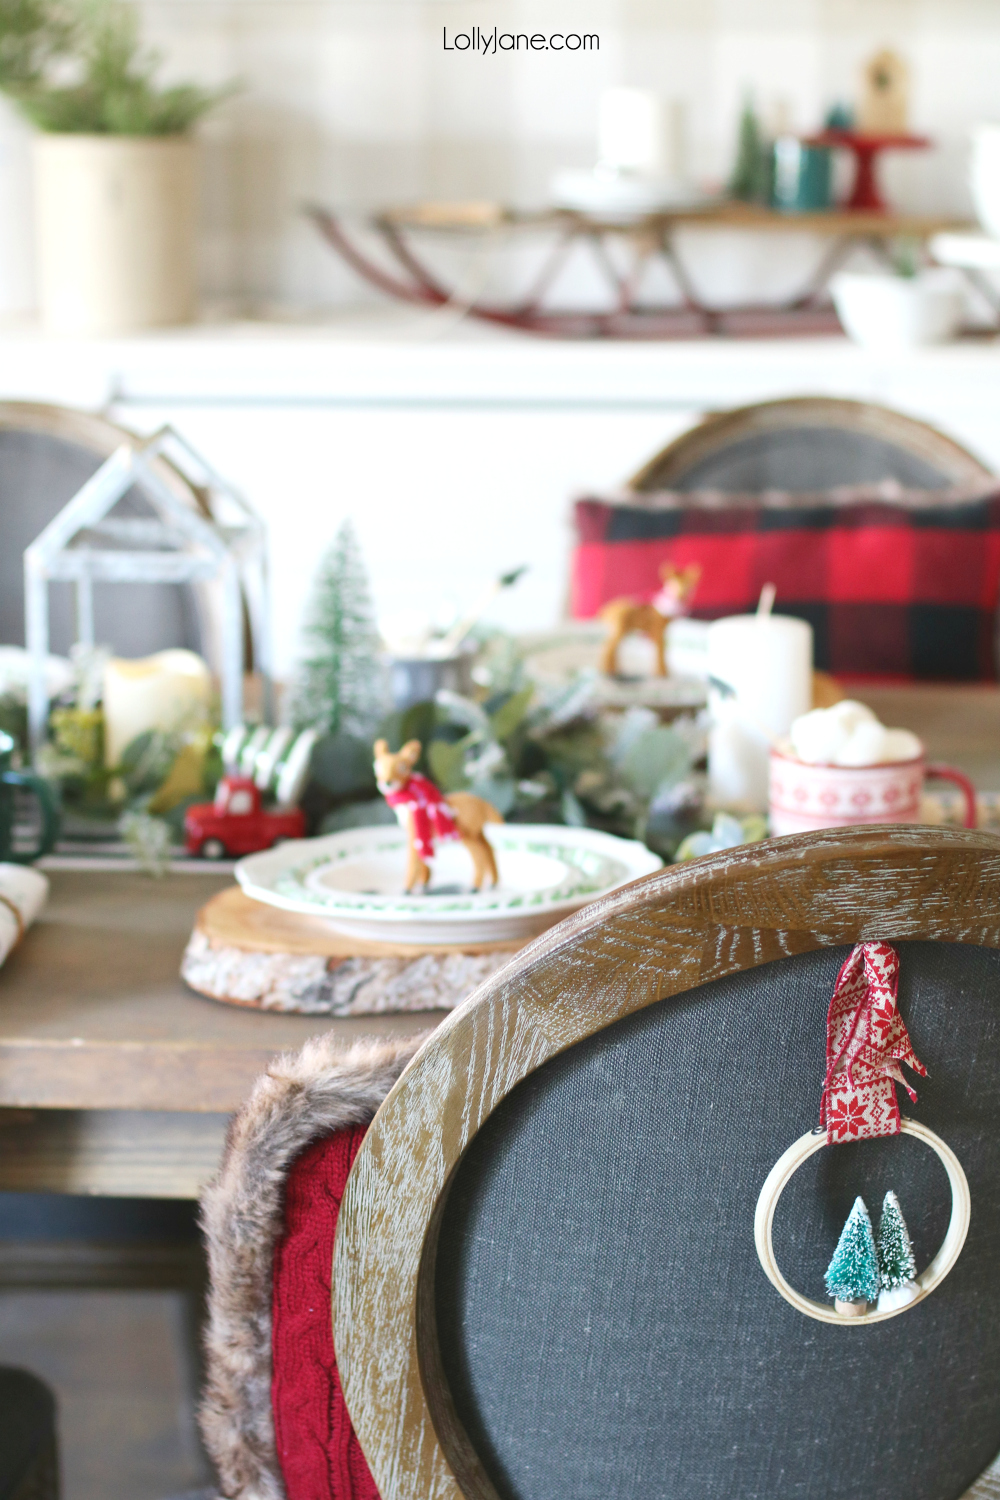 Love this Christmas tablescape with easy ideas how to create your own! #christmas #christmastablescape #christmascenterpiece #centerpiece #wintertablescape #diy